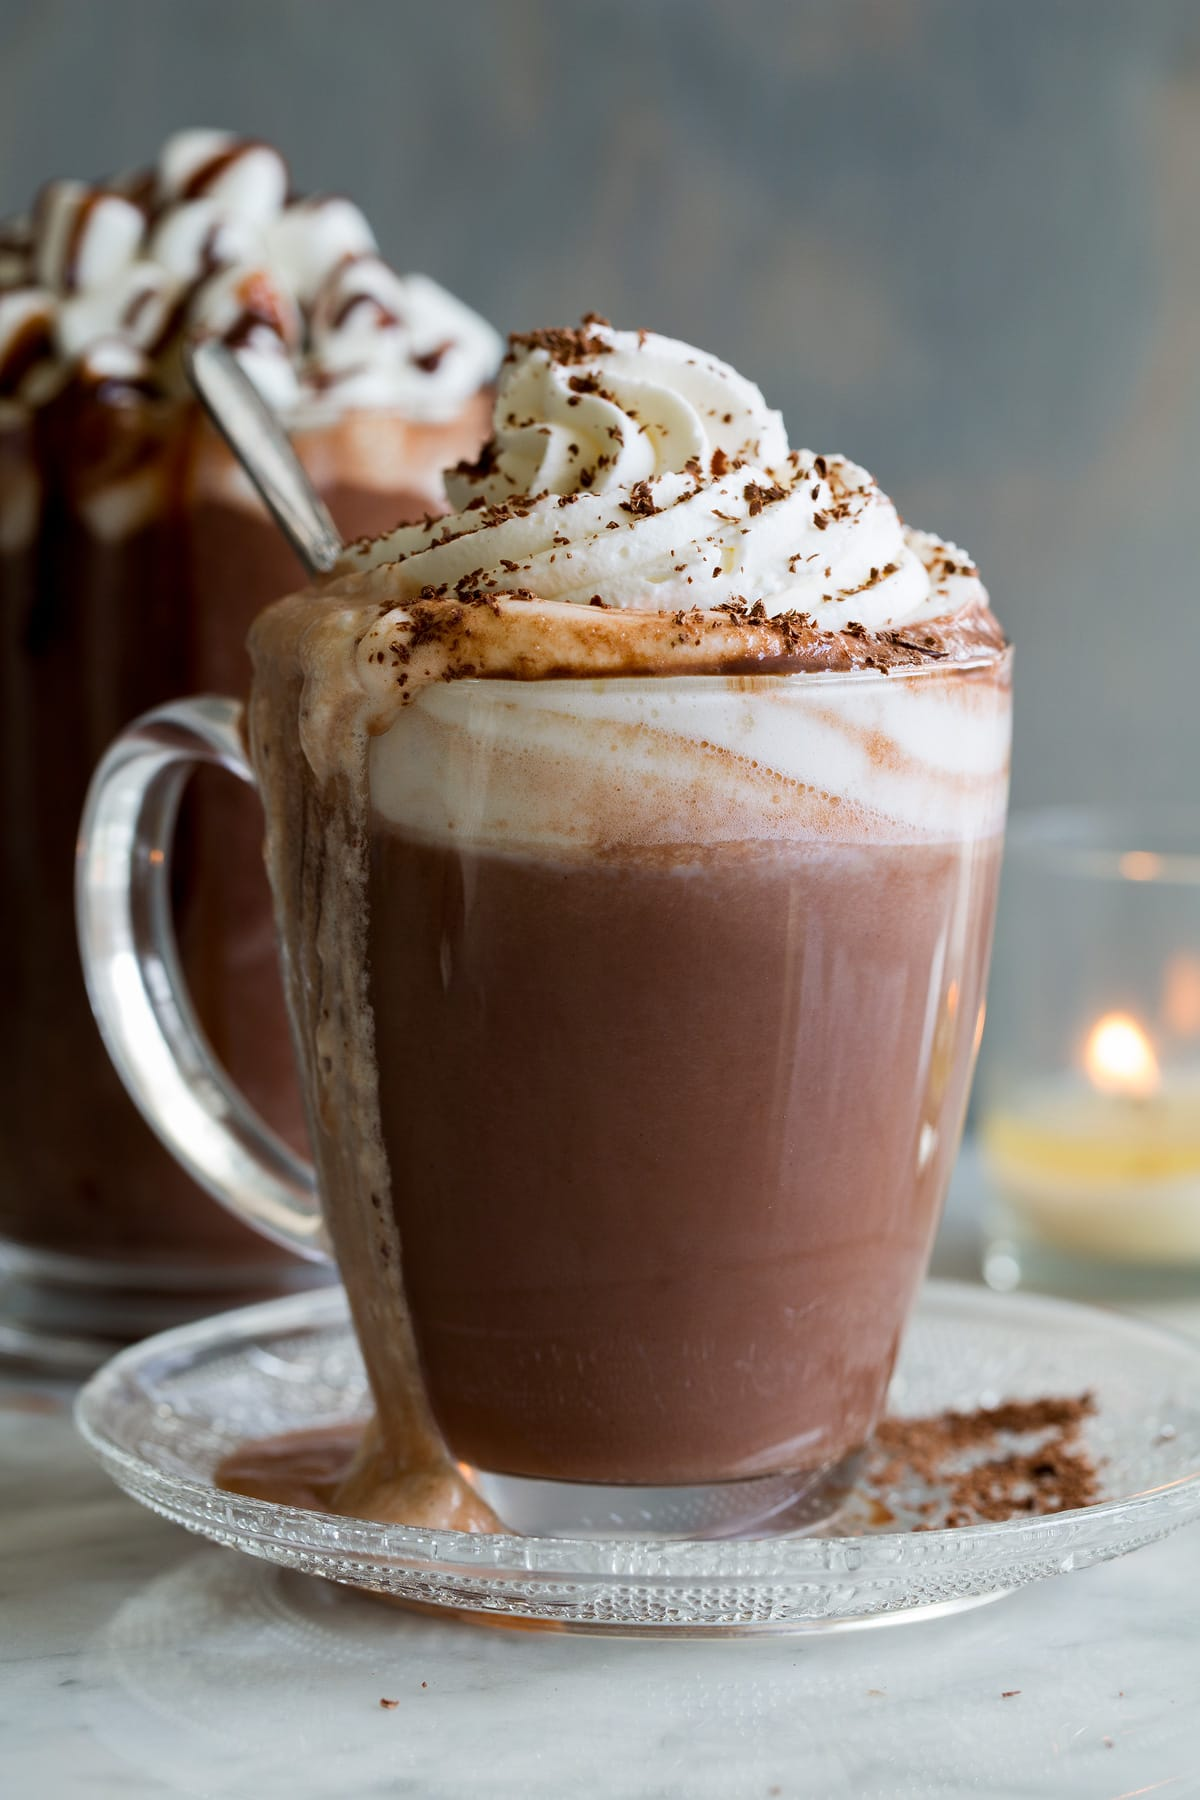 Can You Make Hot Chocolate With Cocoa Powder